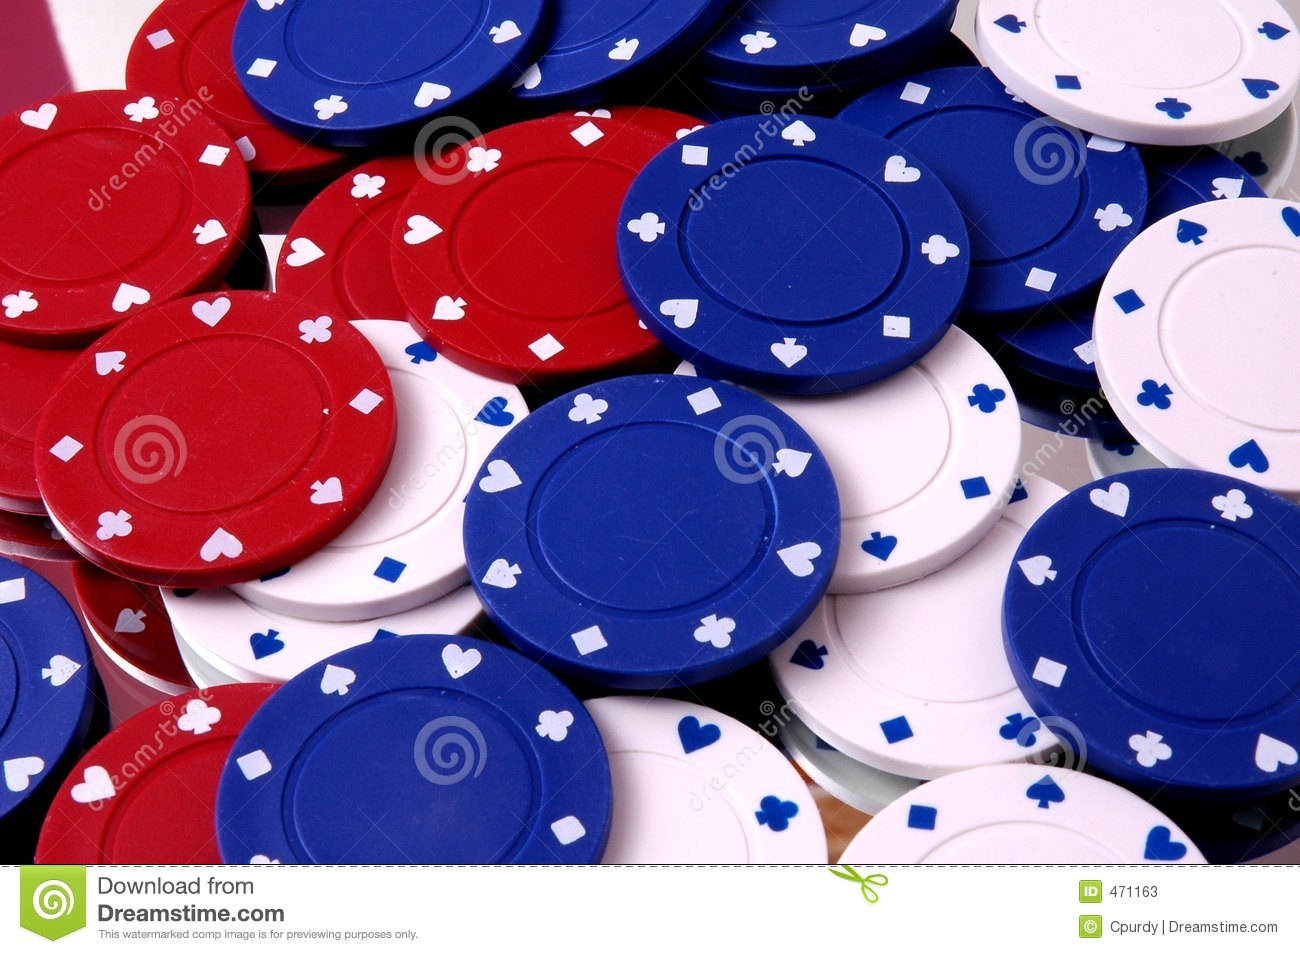 Bunch of Poker Chips